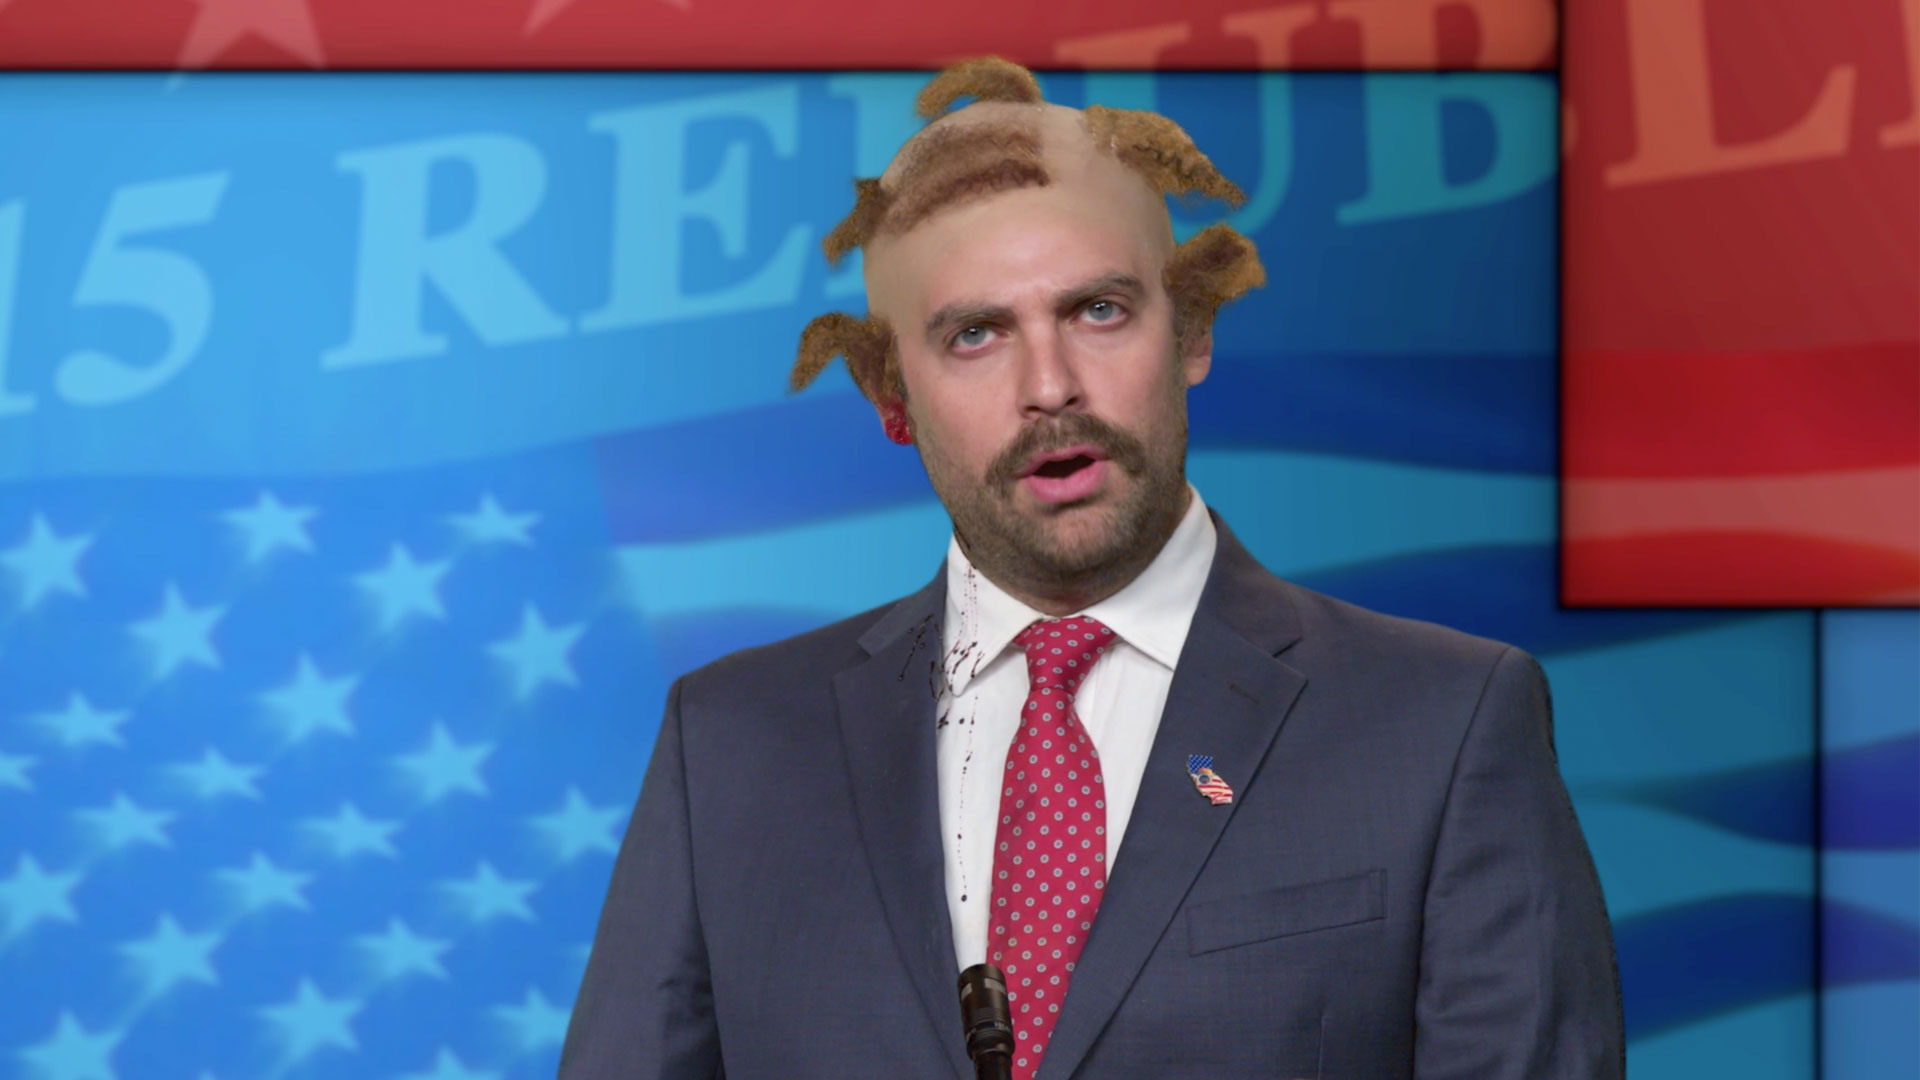 THESE STRANGE AMERICANS ARE RUNNING FOR PRESIDENT - THIRD-TIER REPUBLICAN DEBATE